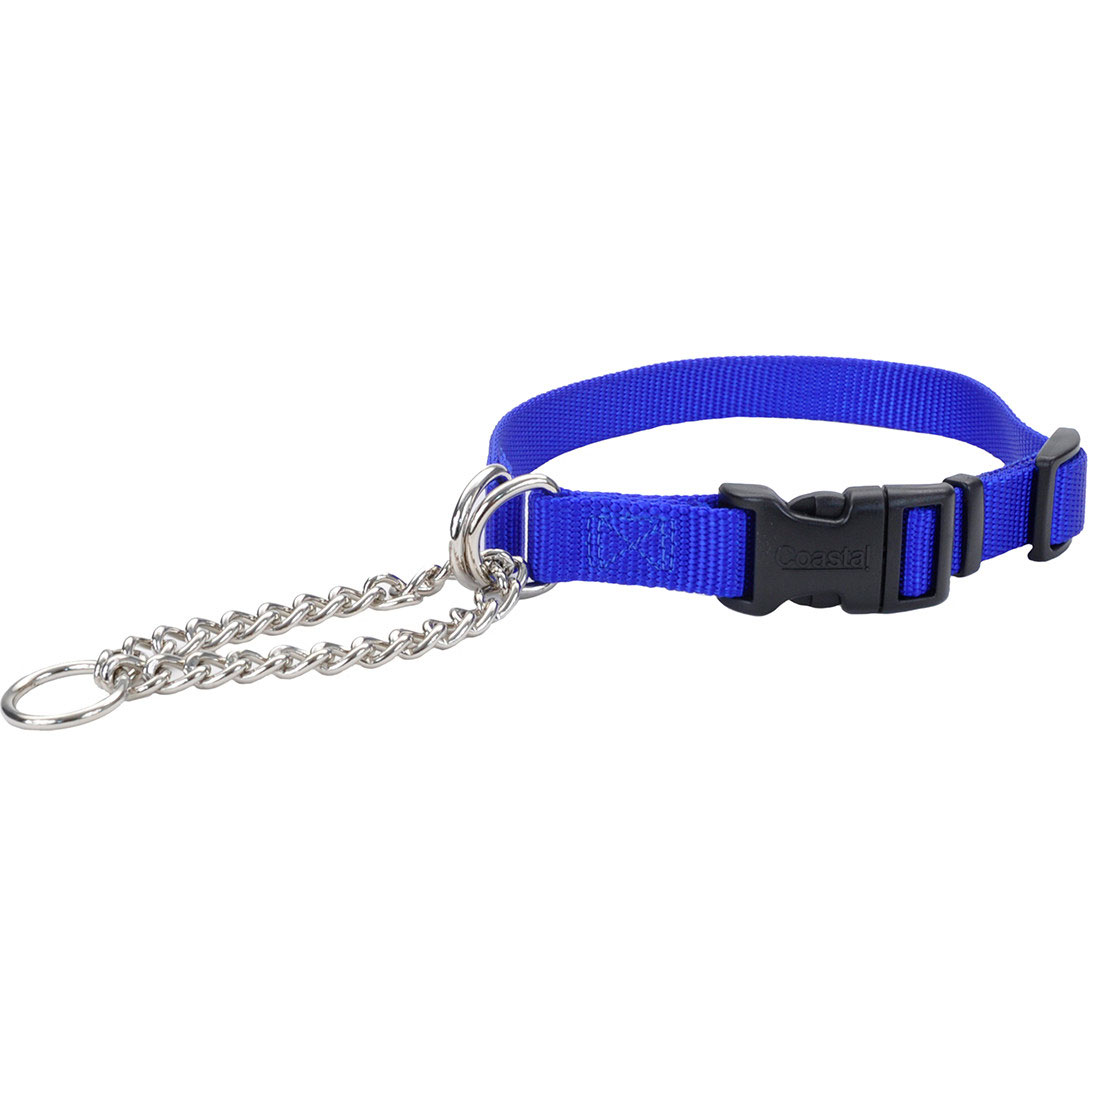 Coastal Adjustable Check with Buckle Training Dog Collar, Blue, 3/8-in x 11-15-in